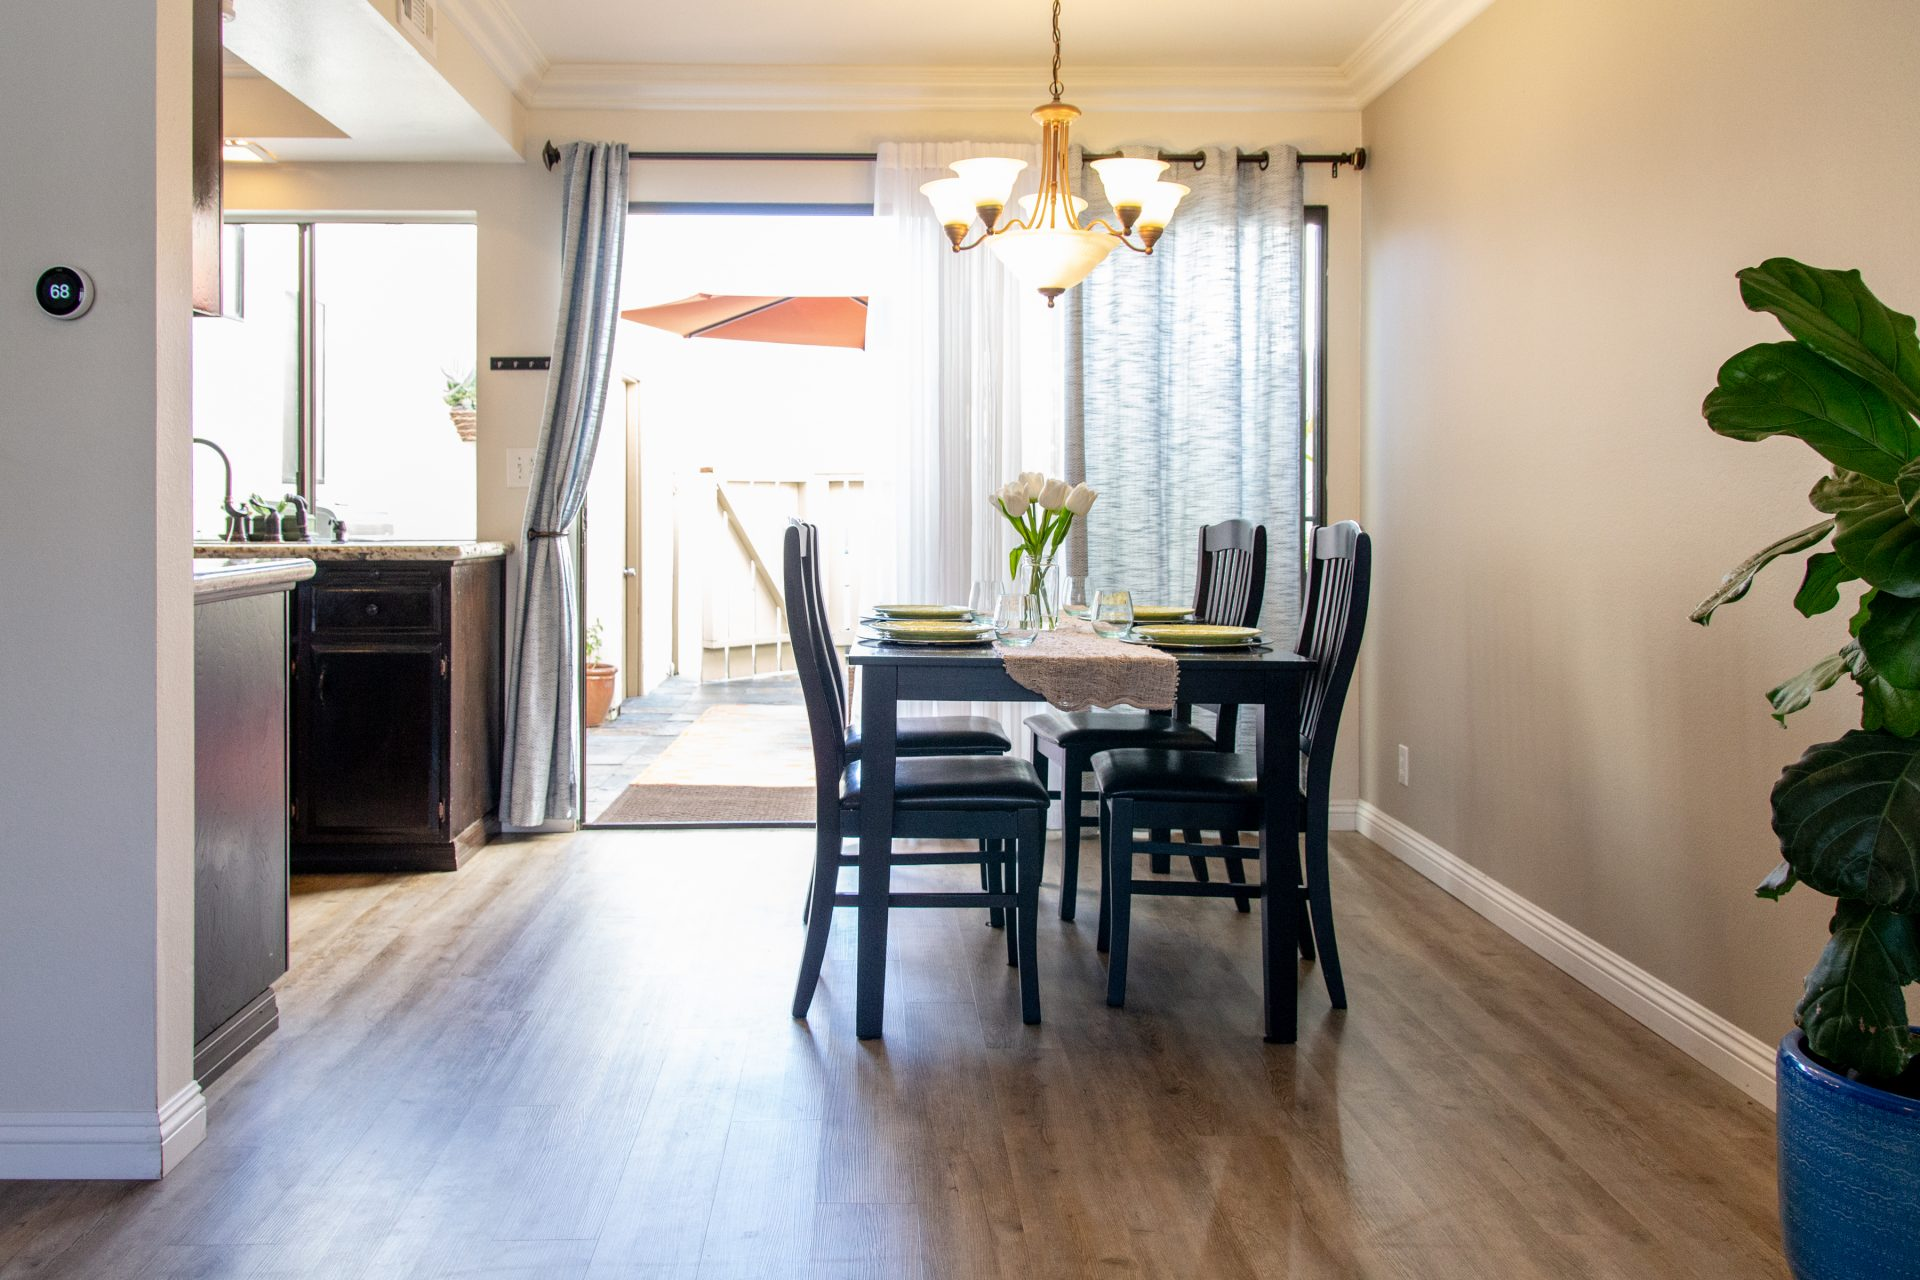 Table And Chairs In Dining Space